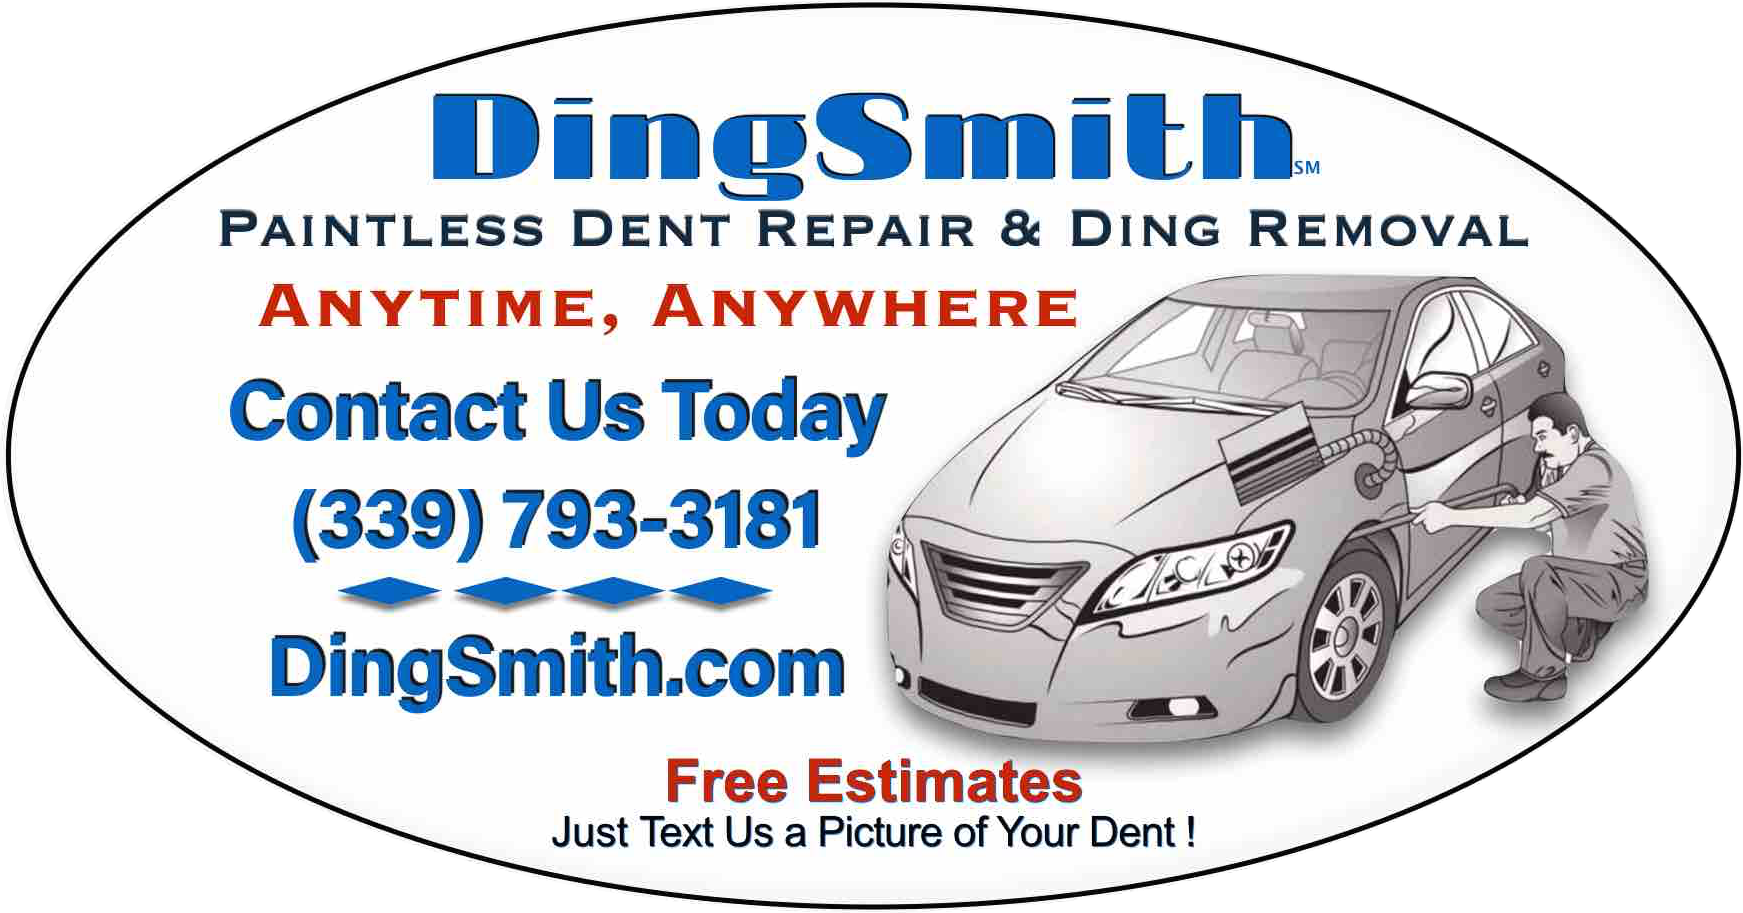 DingSmith Mobile Paintless Dent and Ding Removal of